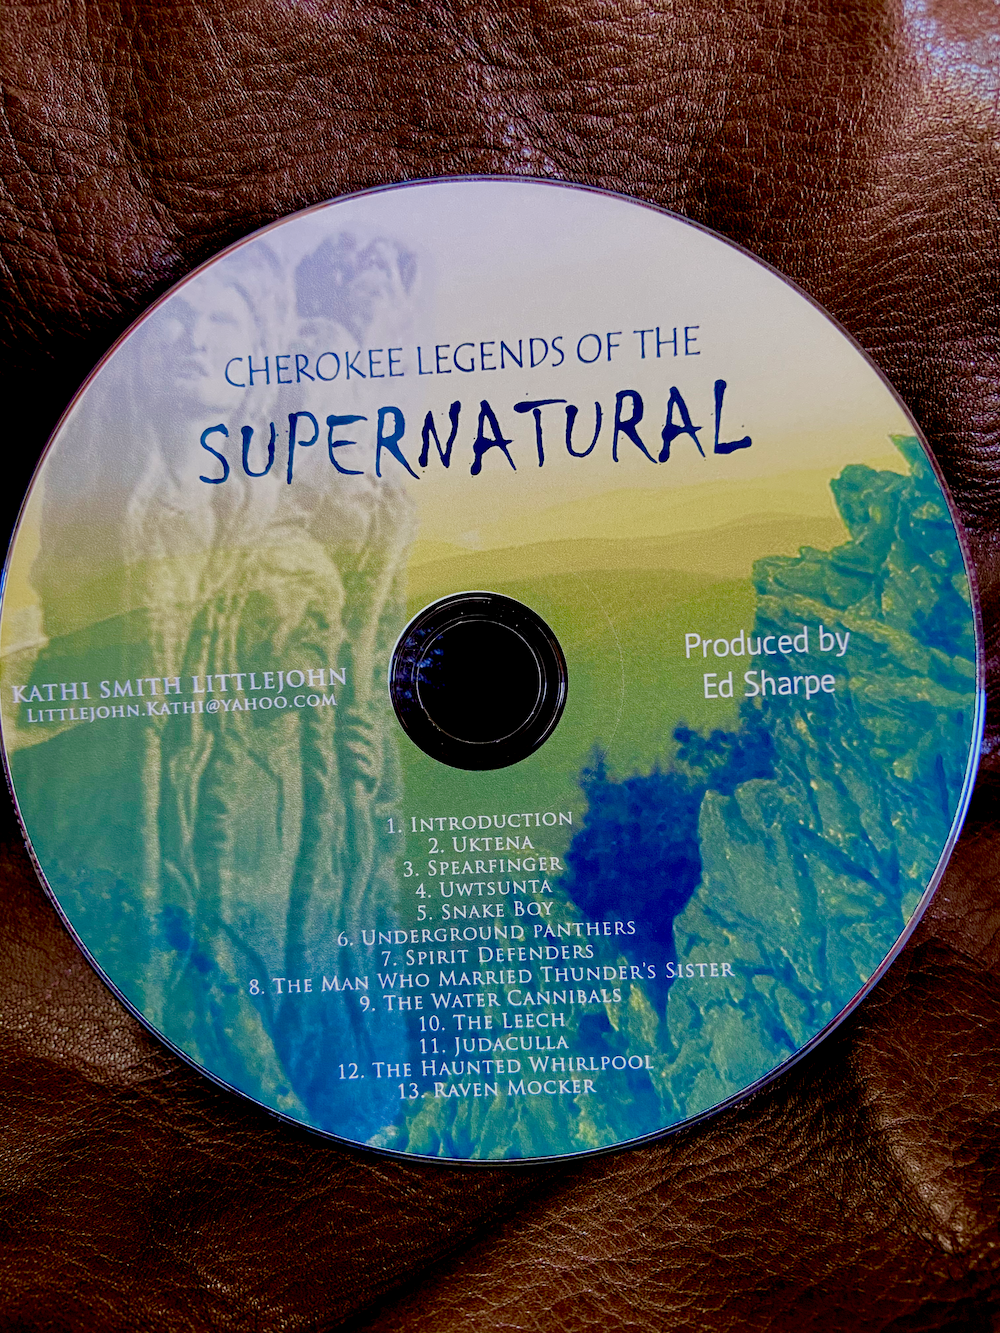 Cherokee Legends 0f the Supernatural - CD recording